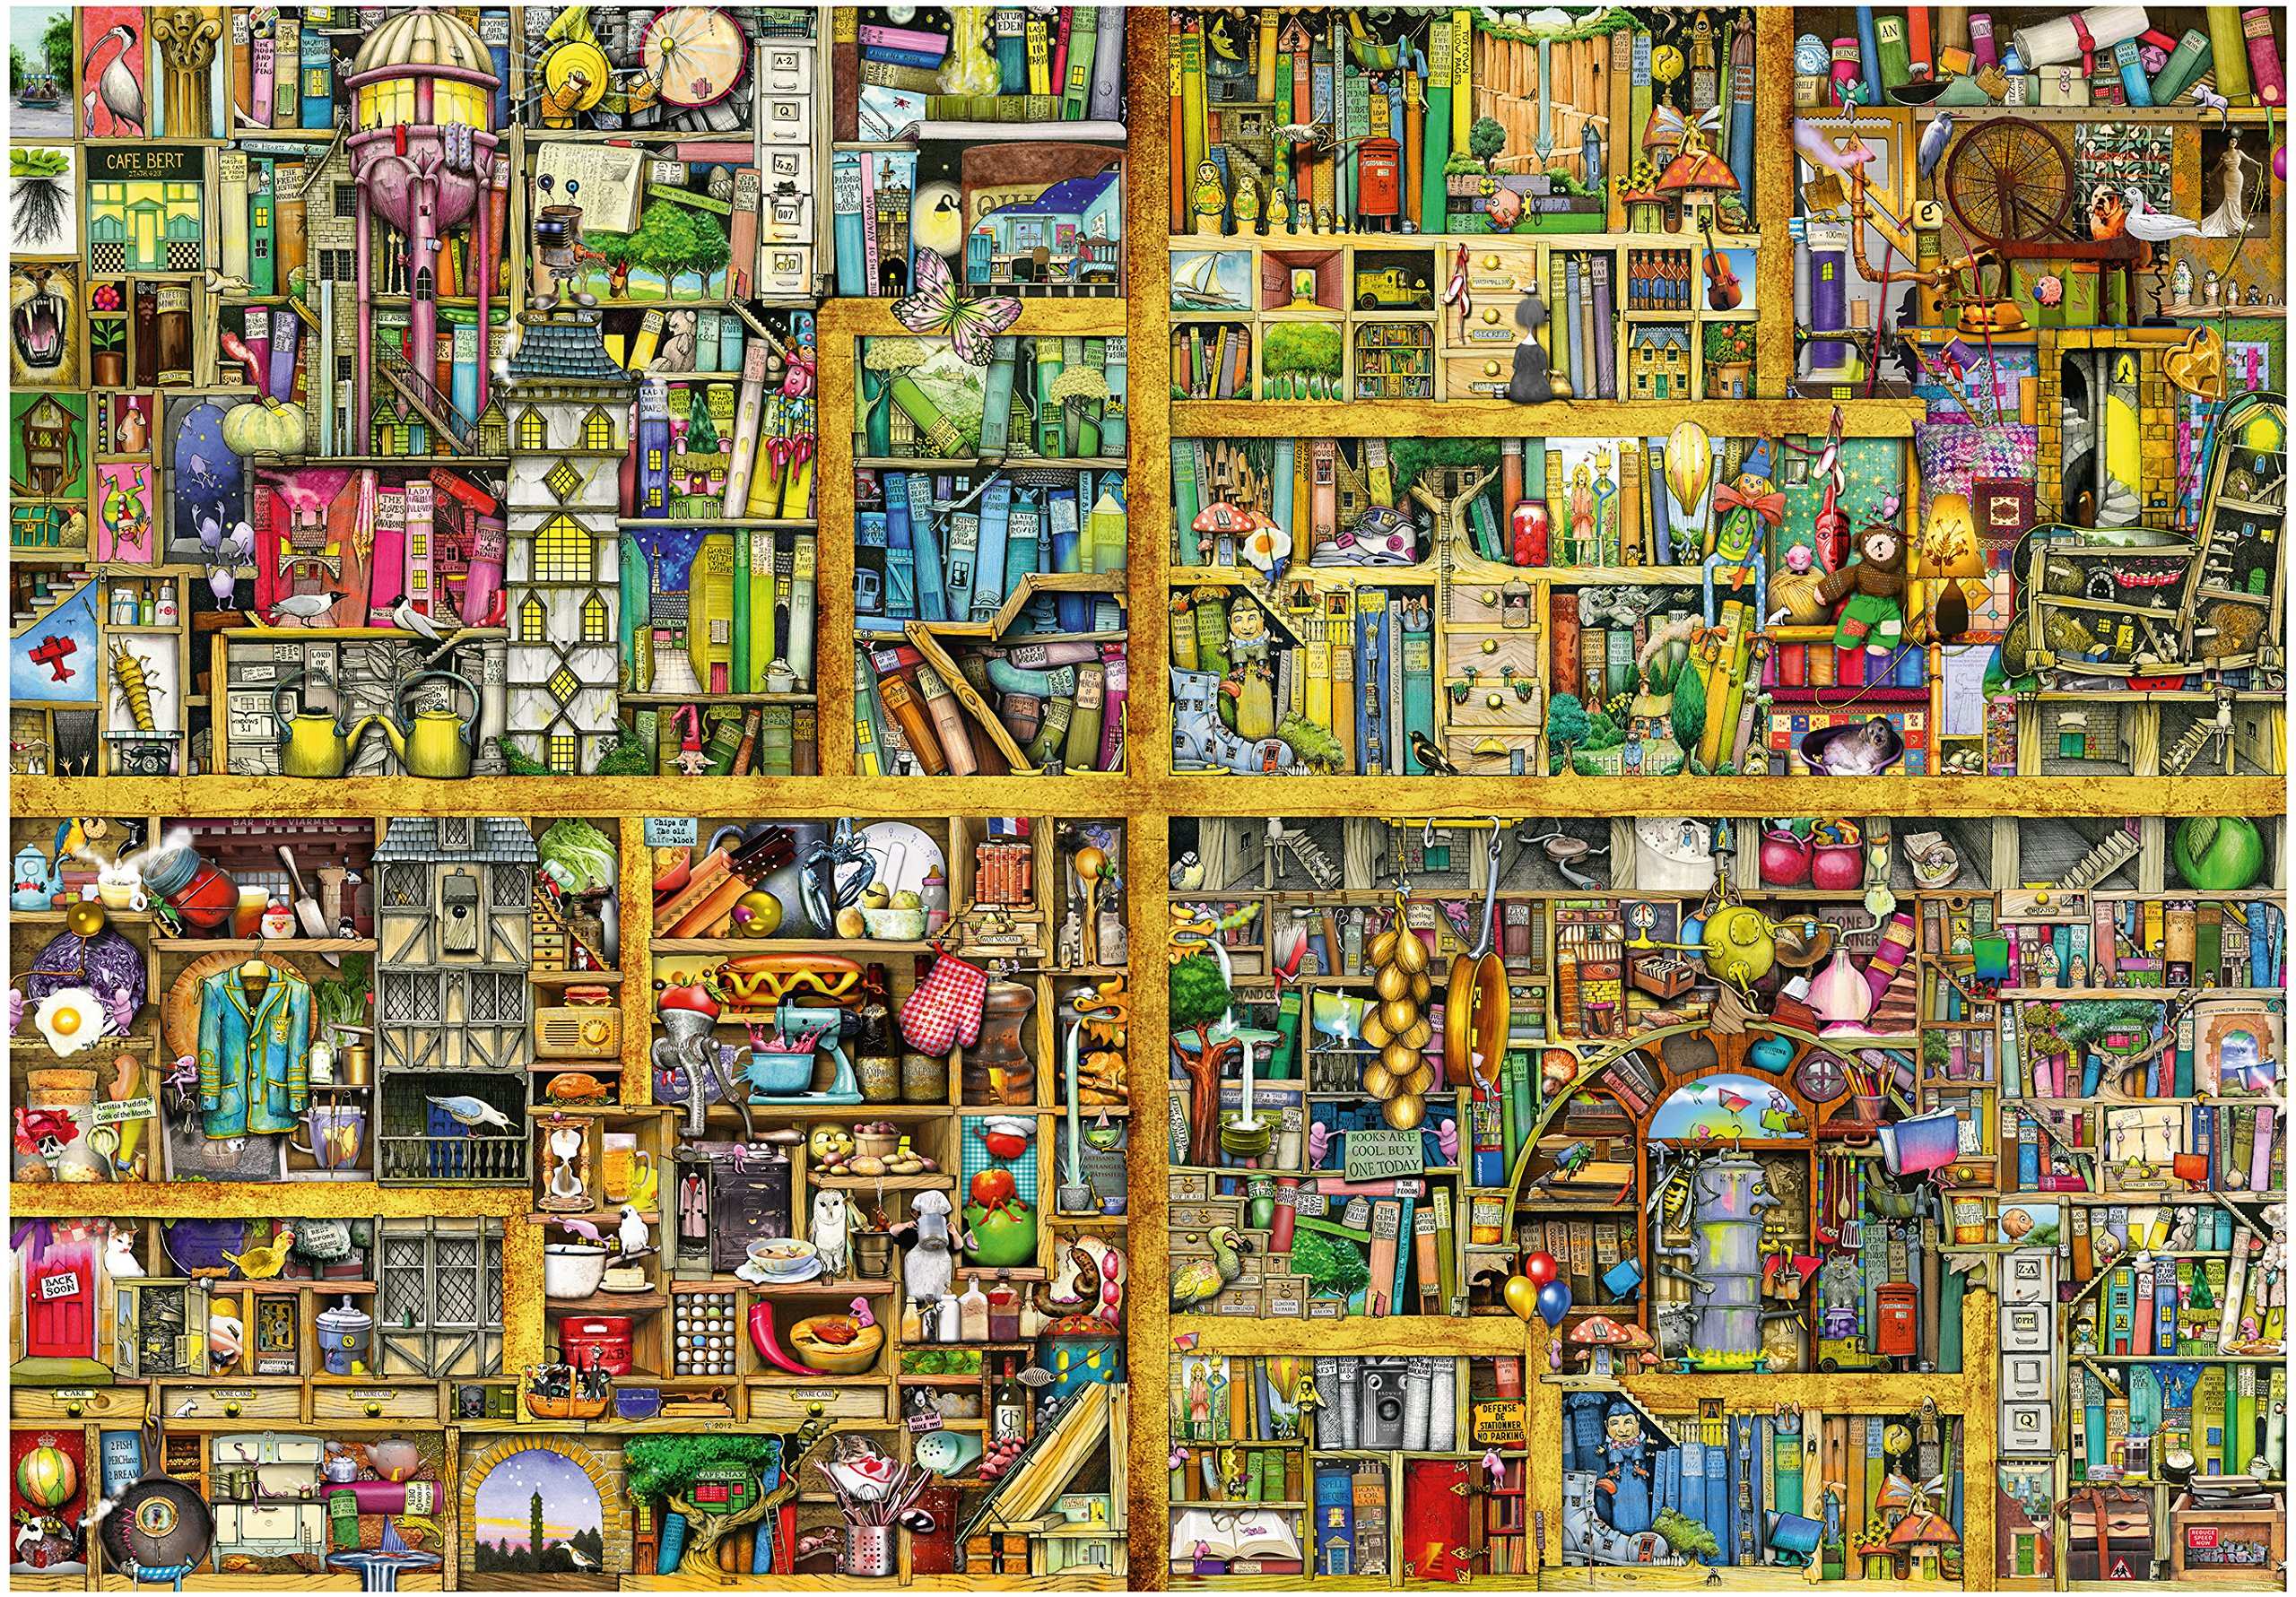 Extra Large Jigsaw Puzzles | GIANT Puzzles Not For The Faint